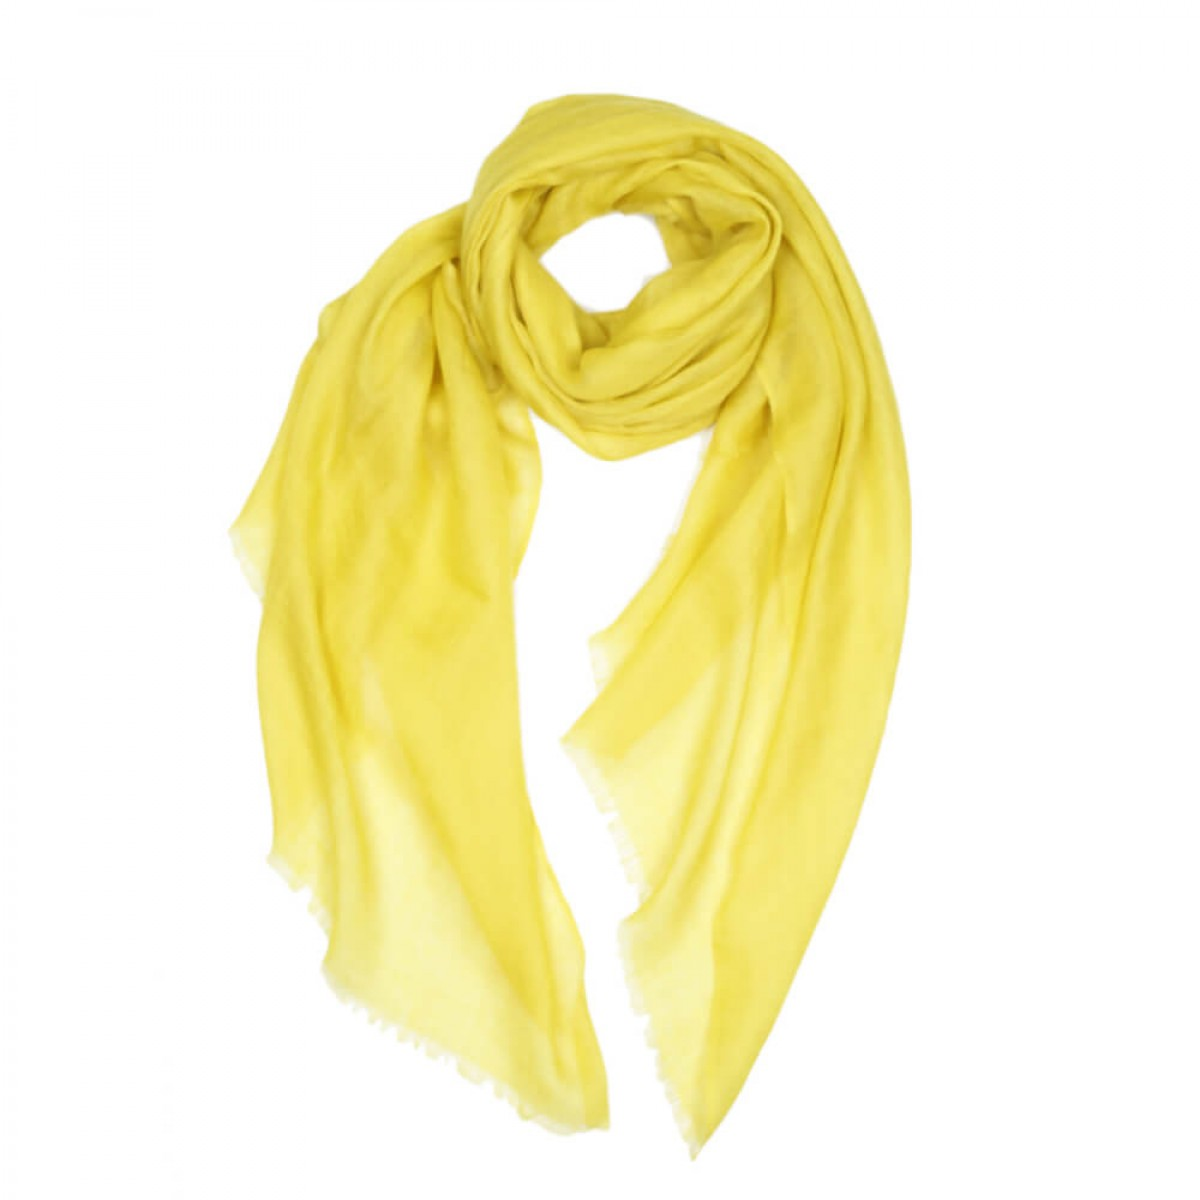 Sheer Pashmina Scarf - Sleeping Lotus Yellow